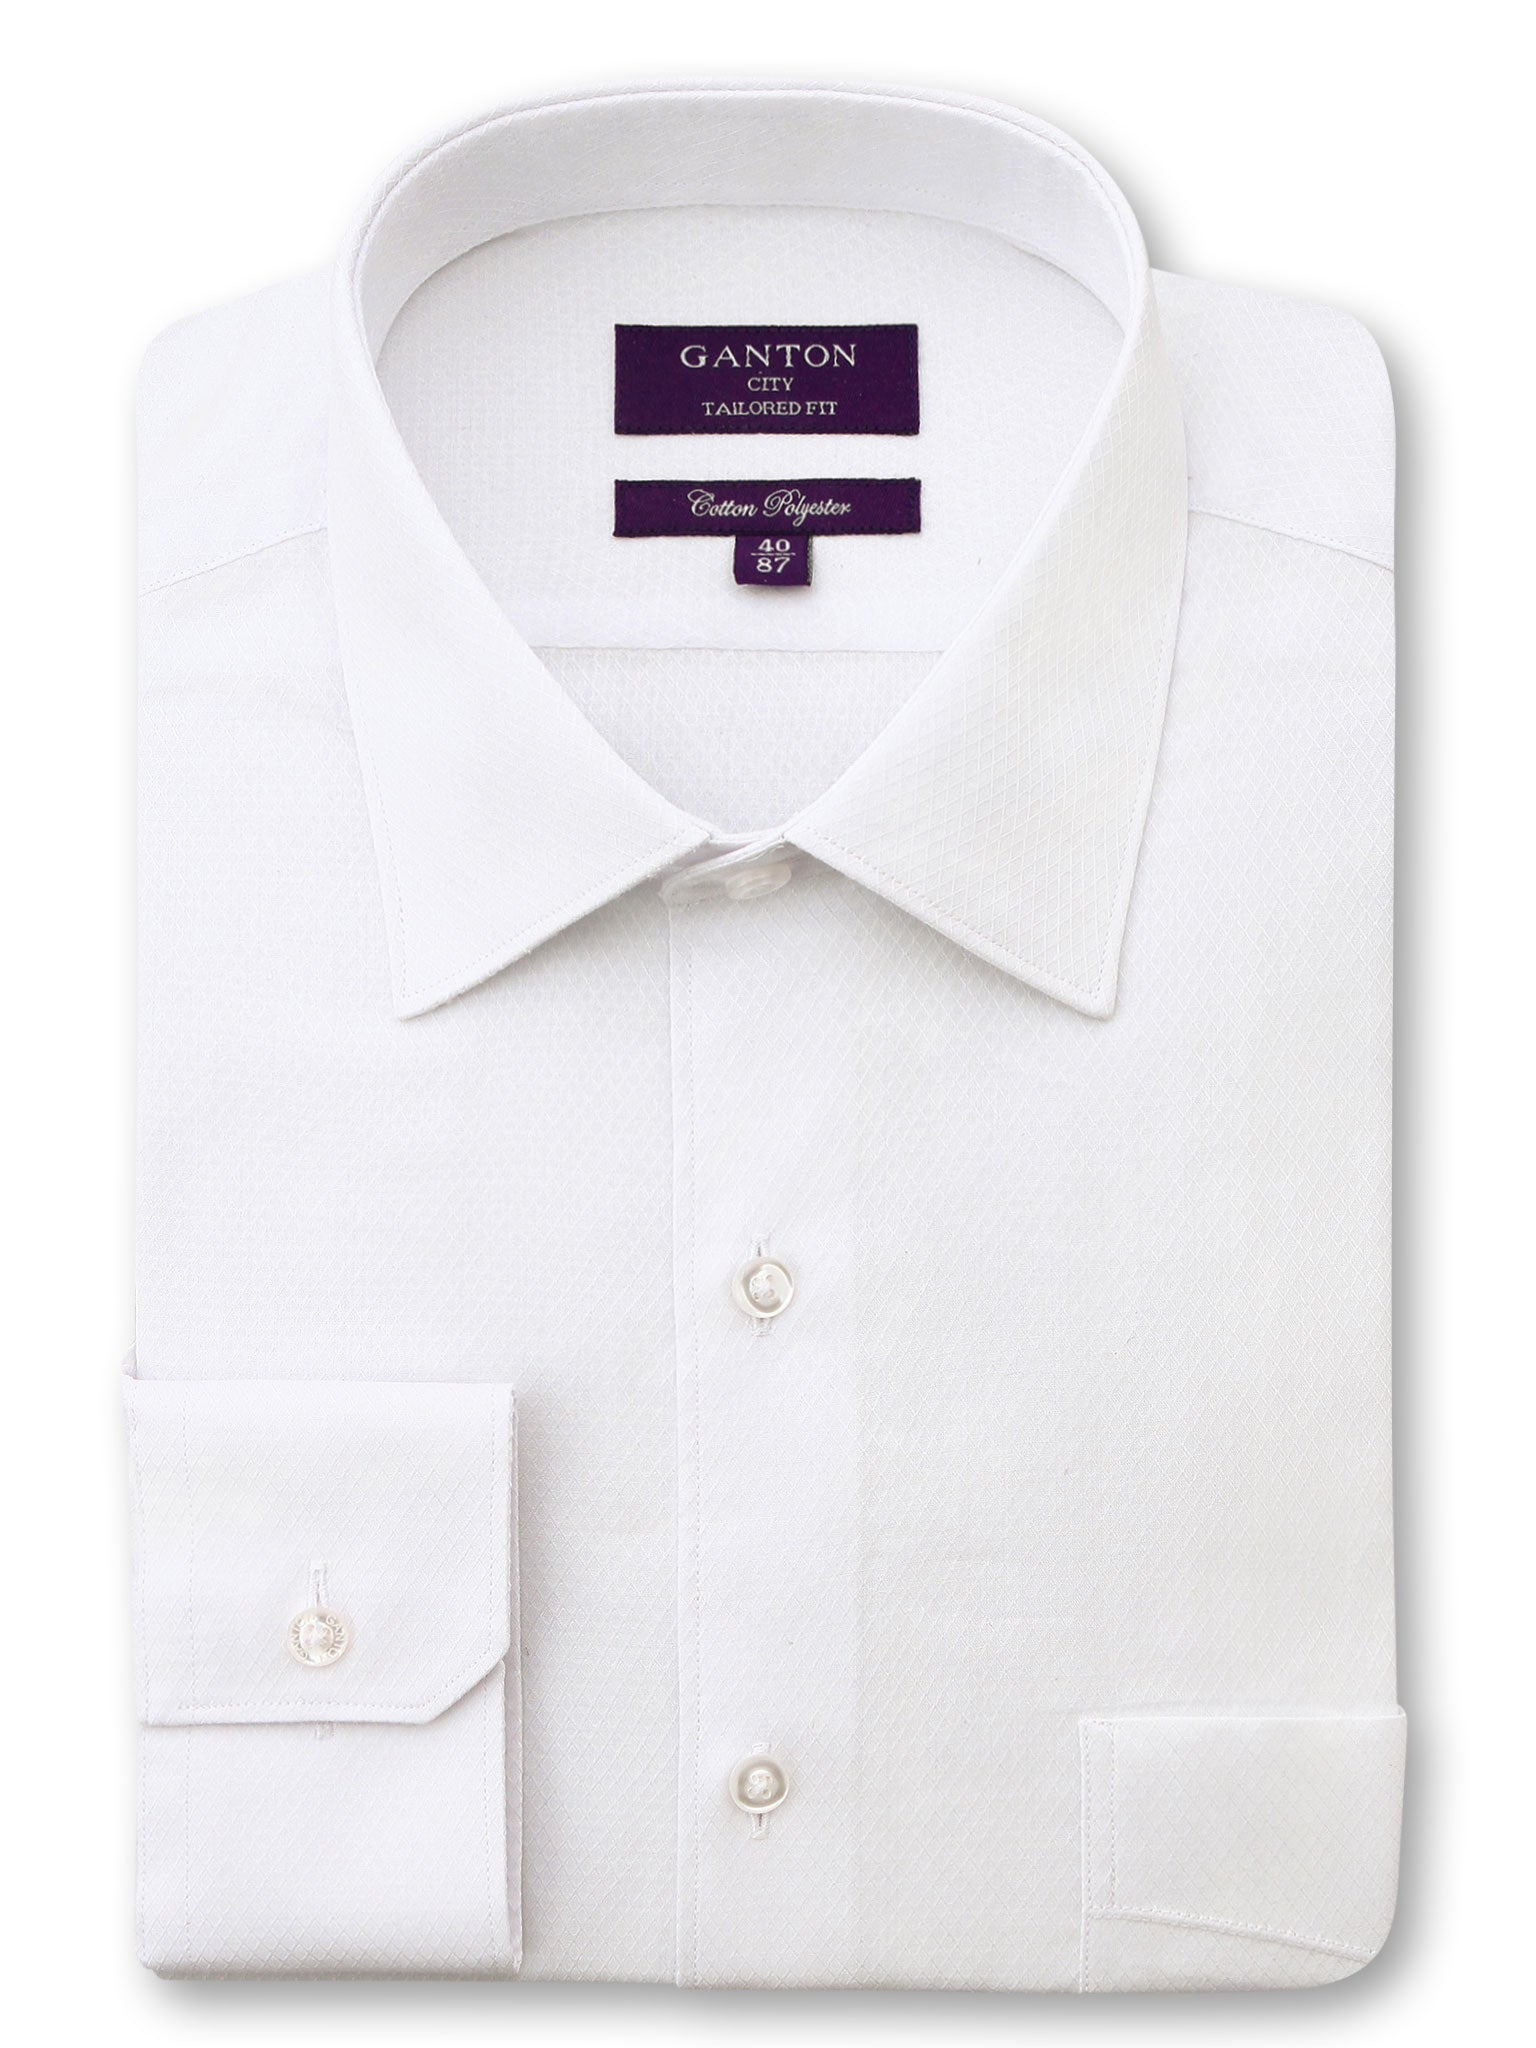 White Textured Tailored Fit Davis Cotton Polyester Shirt